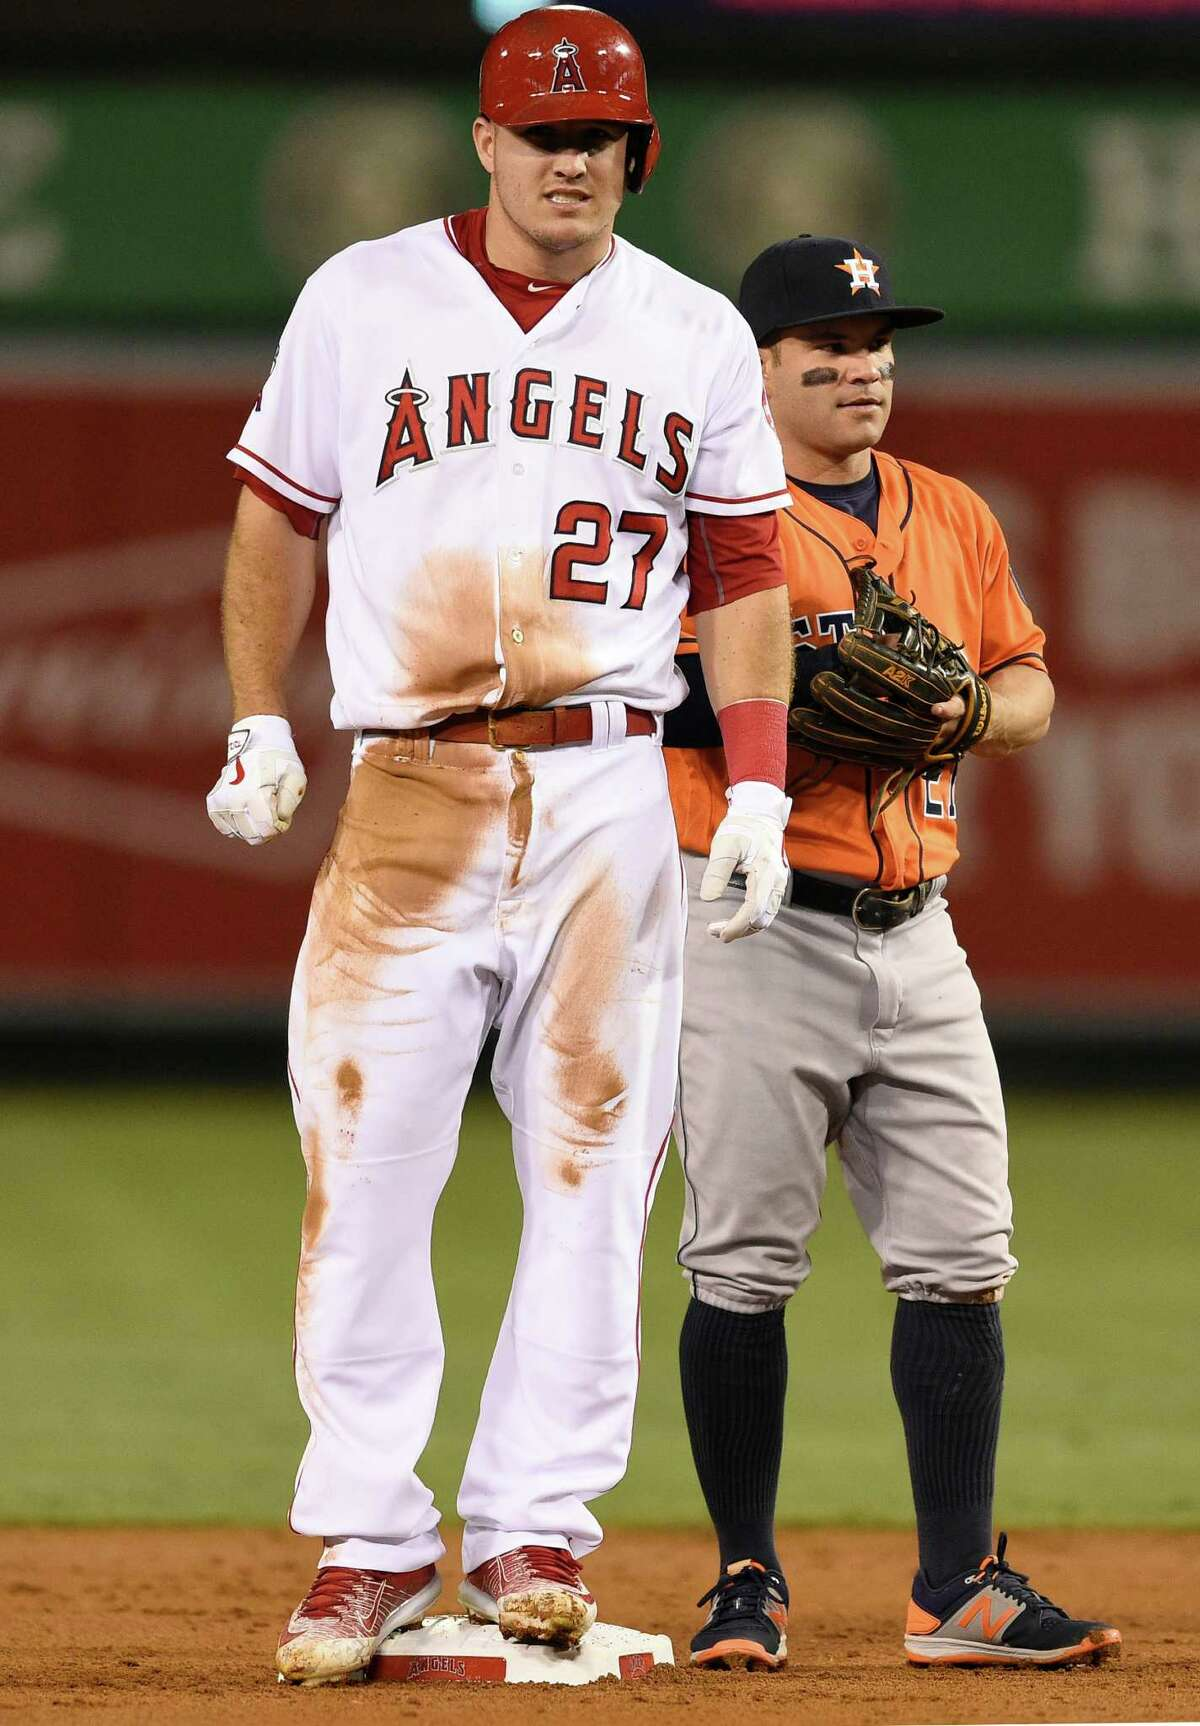 Los Angeles Angels' Mike Trout, left, stands on second after stealing the base as Houston Astros second baseman Jose Altuve, right, looks on during the first inning of a baseball game in Anaheim, Calif., Friday, Sept. 30, 2016. (AP Photo/Kelvin Kuo)